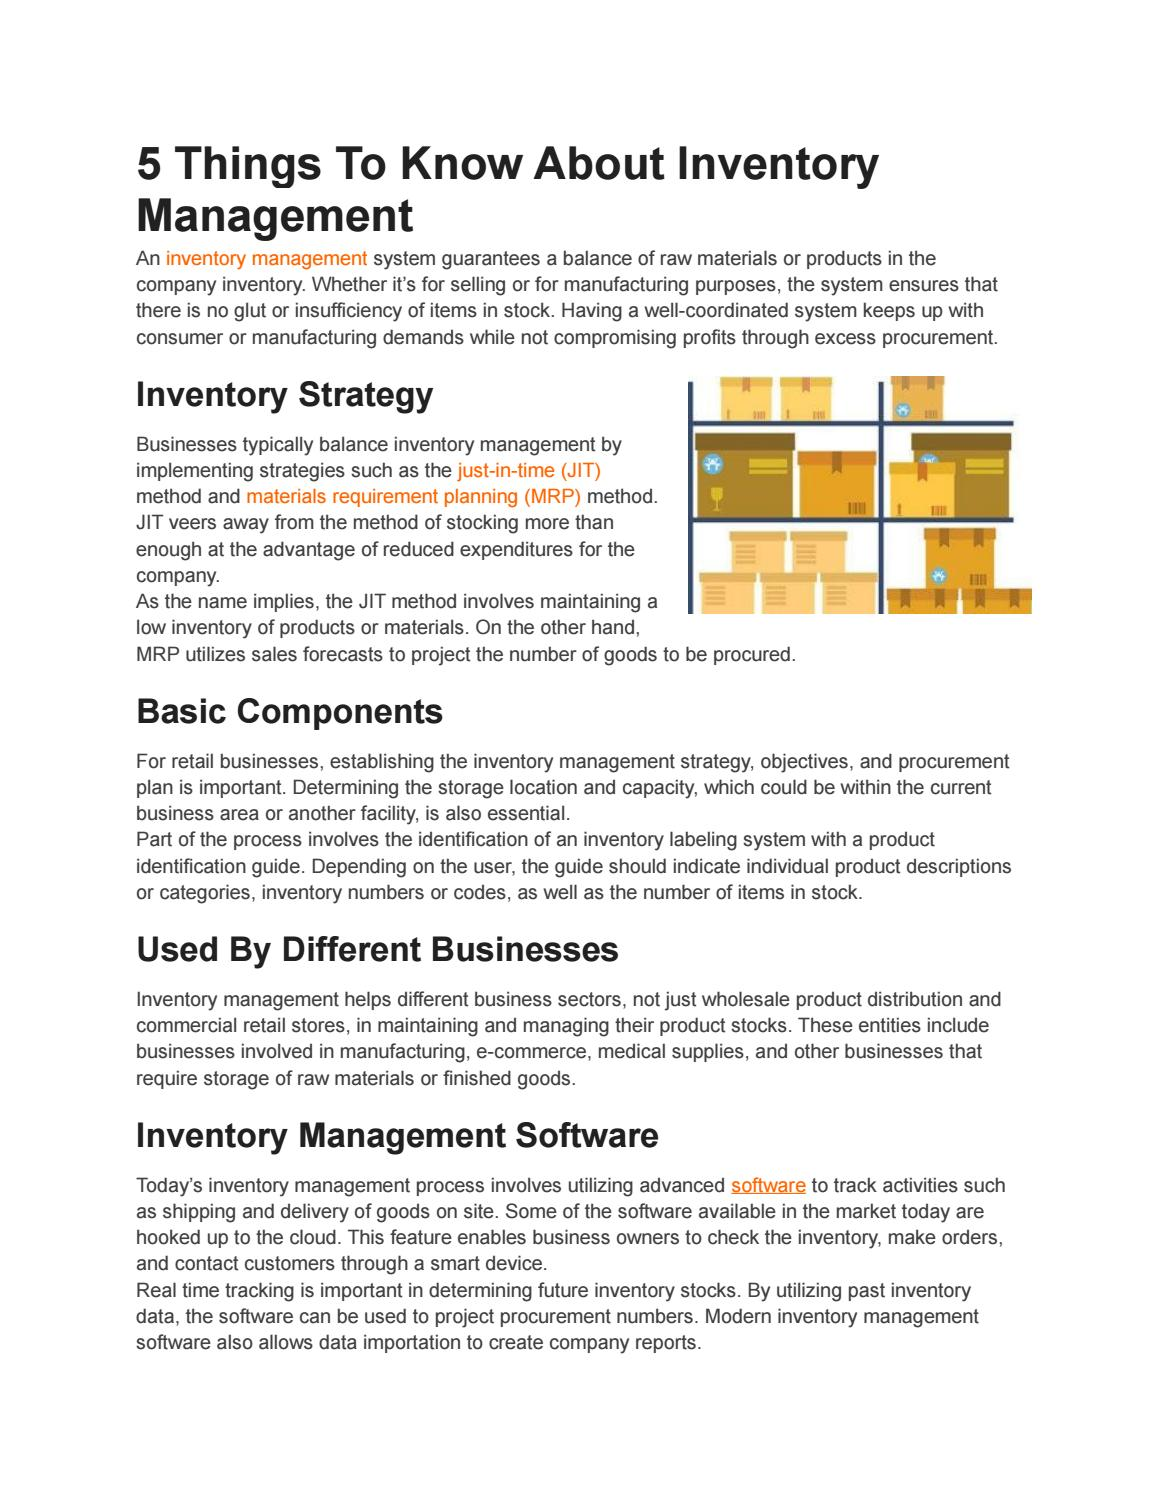 5 Things To Know About Inventory Management by Zenventory - issuu